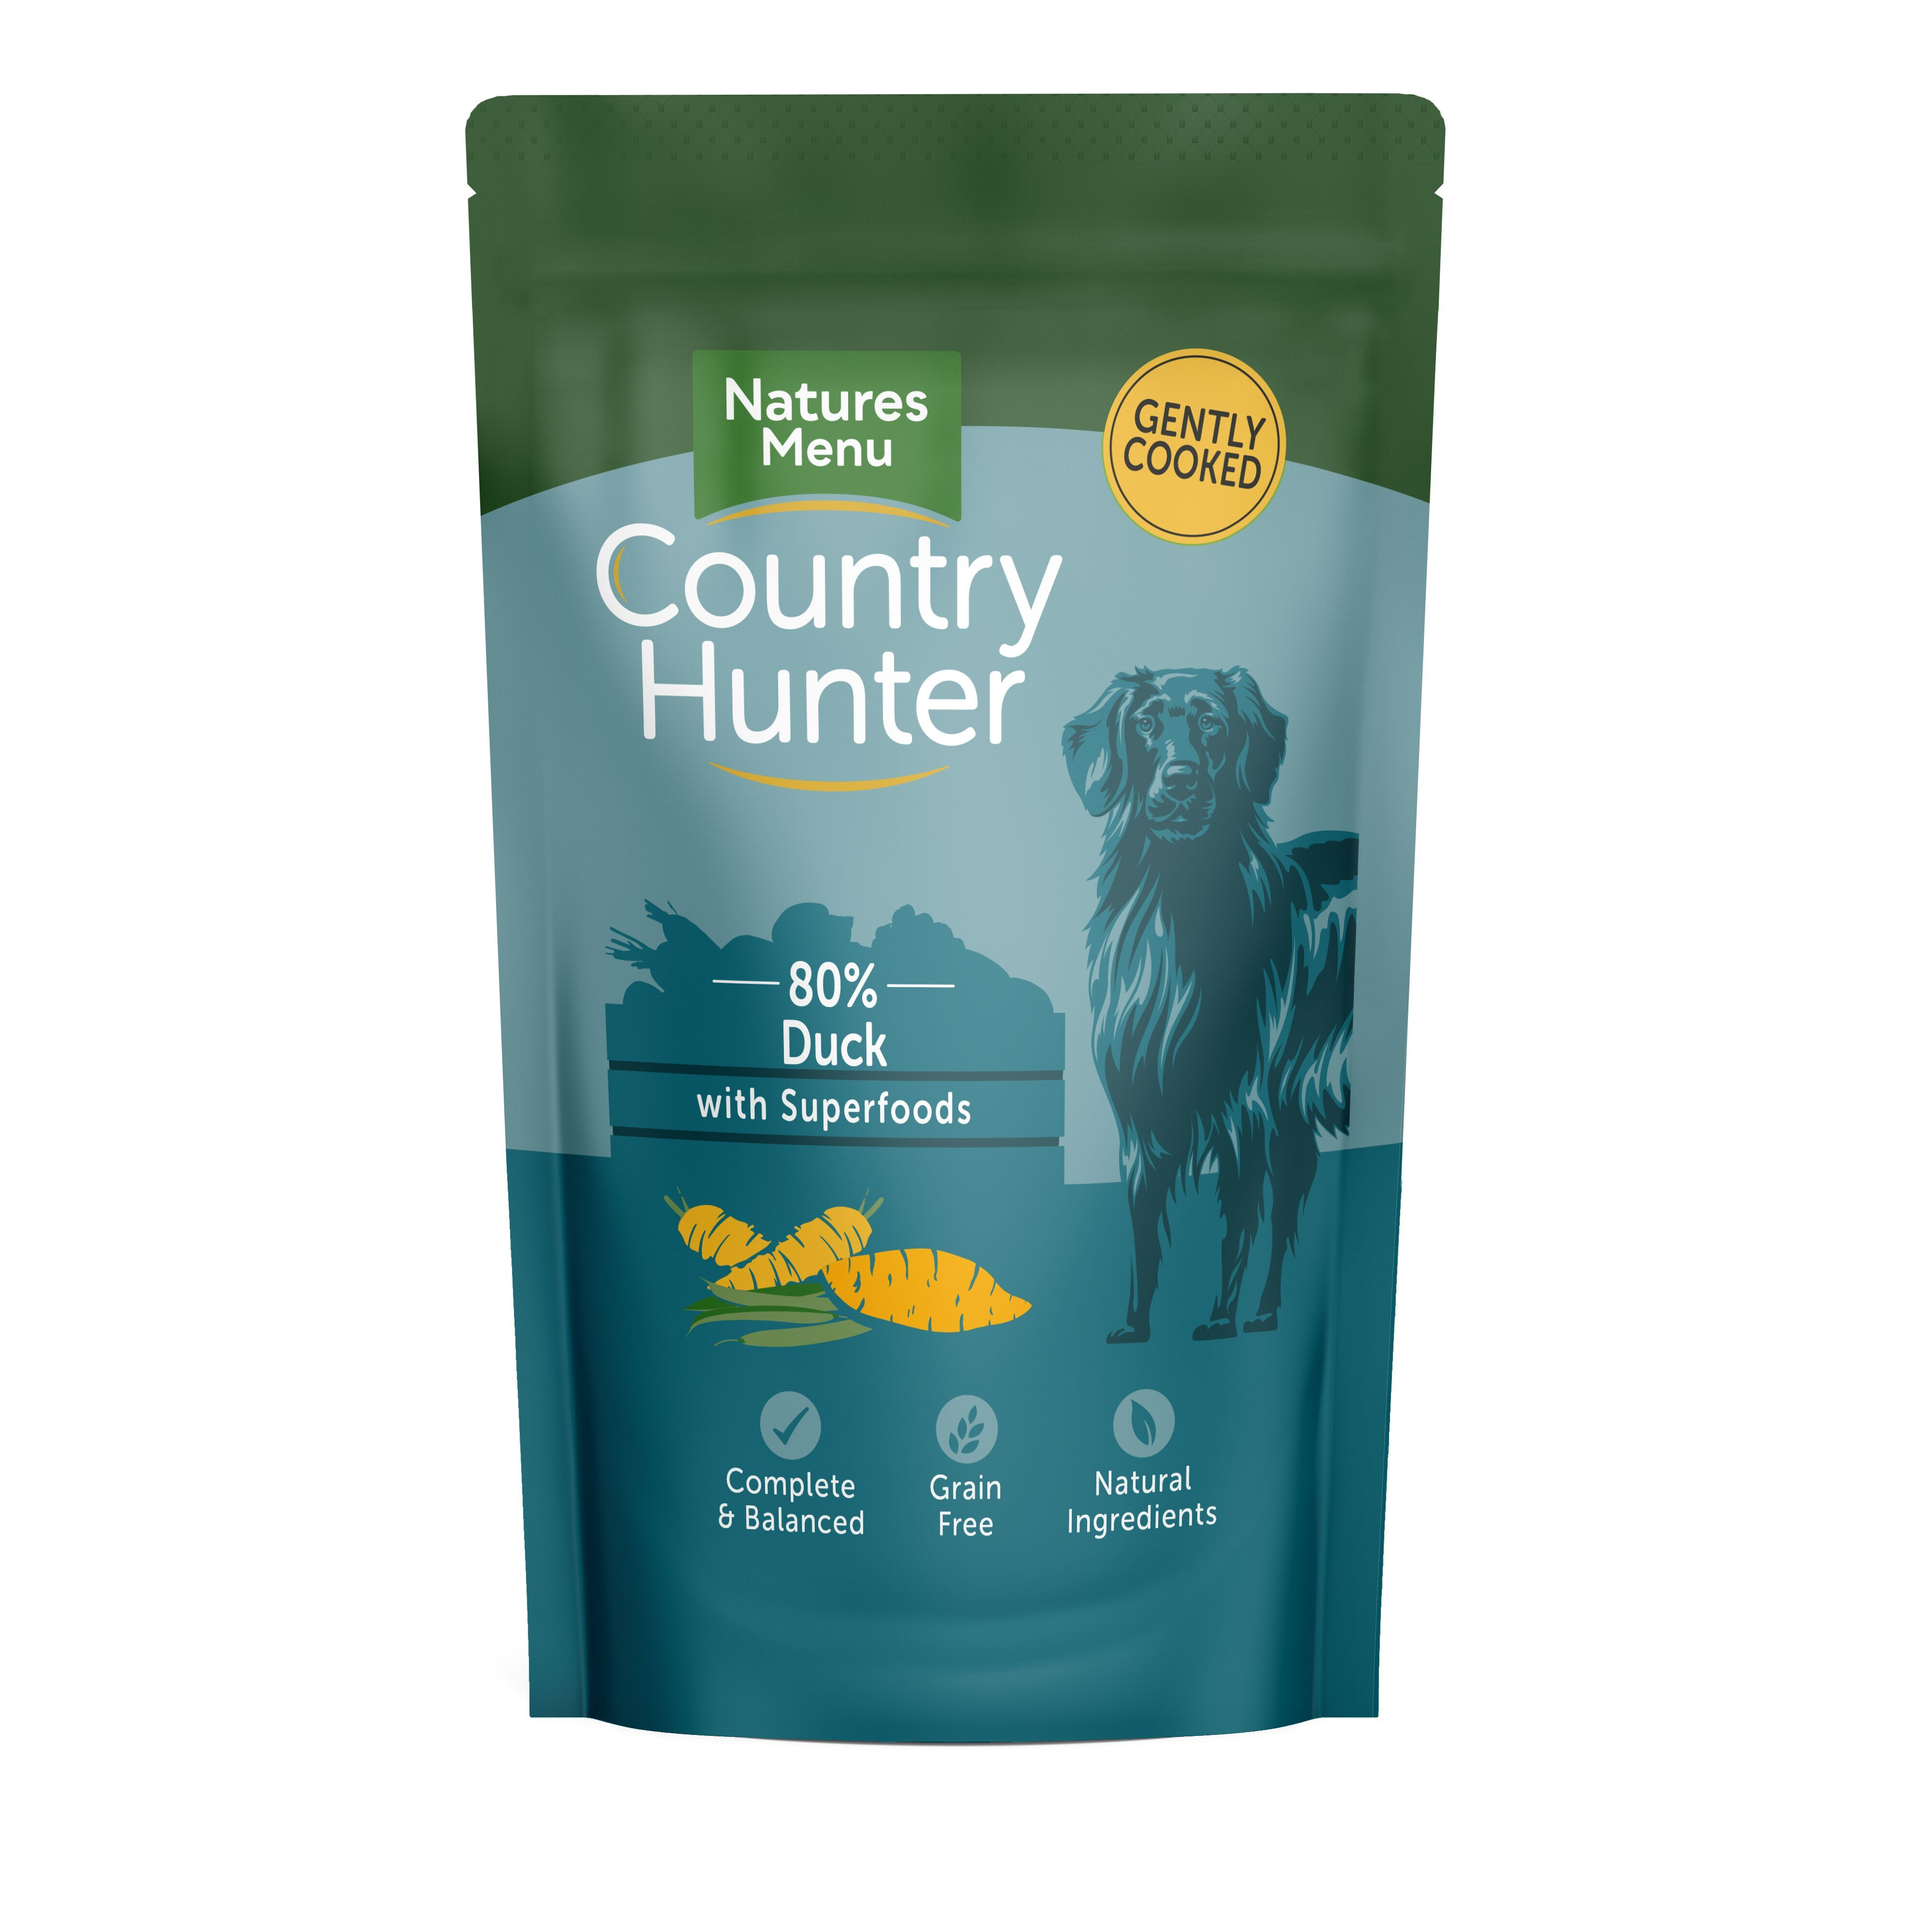 Natures Menu Country Hunter Succulent Duck Dog Food - Wet Natures Menu